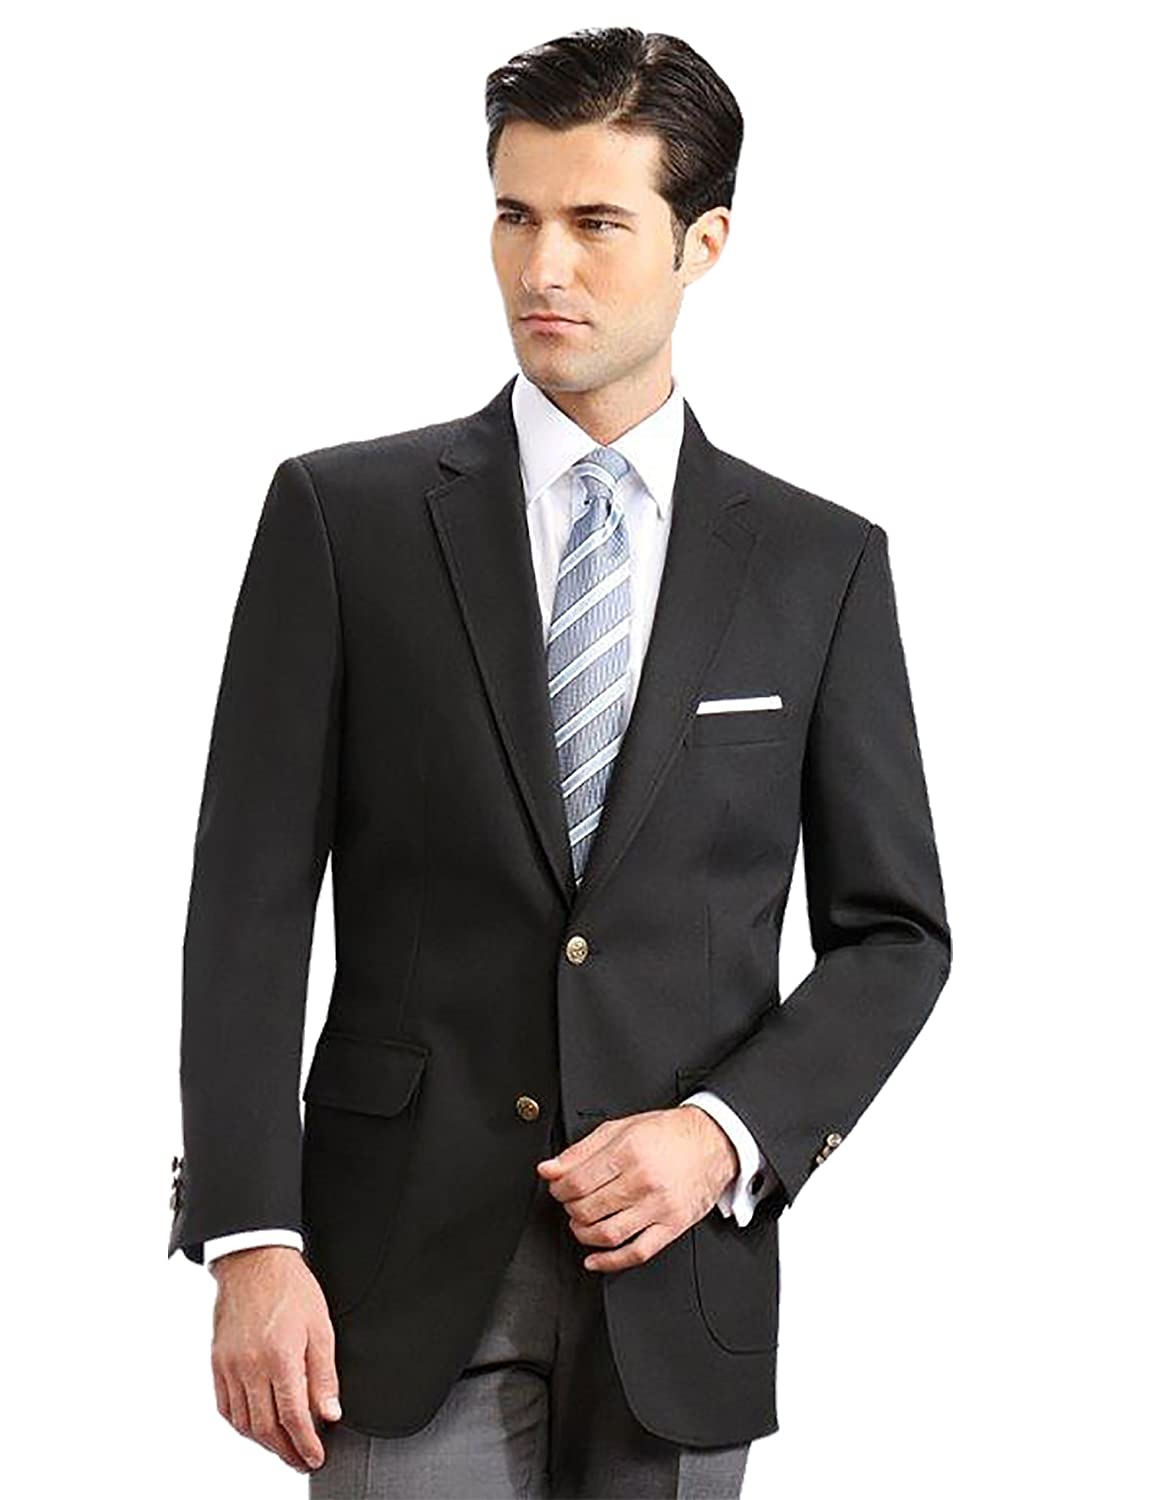 Men's Elegant Modern 2 Button Notch Lapel Blazer - Many Colors (48 Short, Black) 2011C